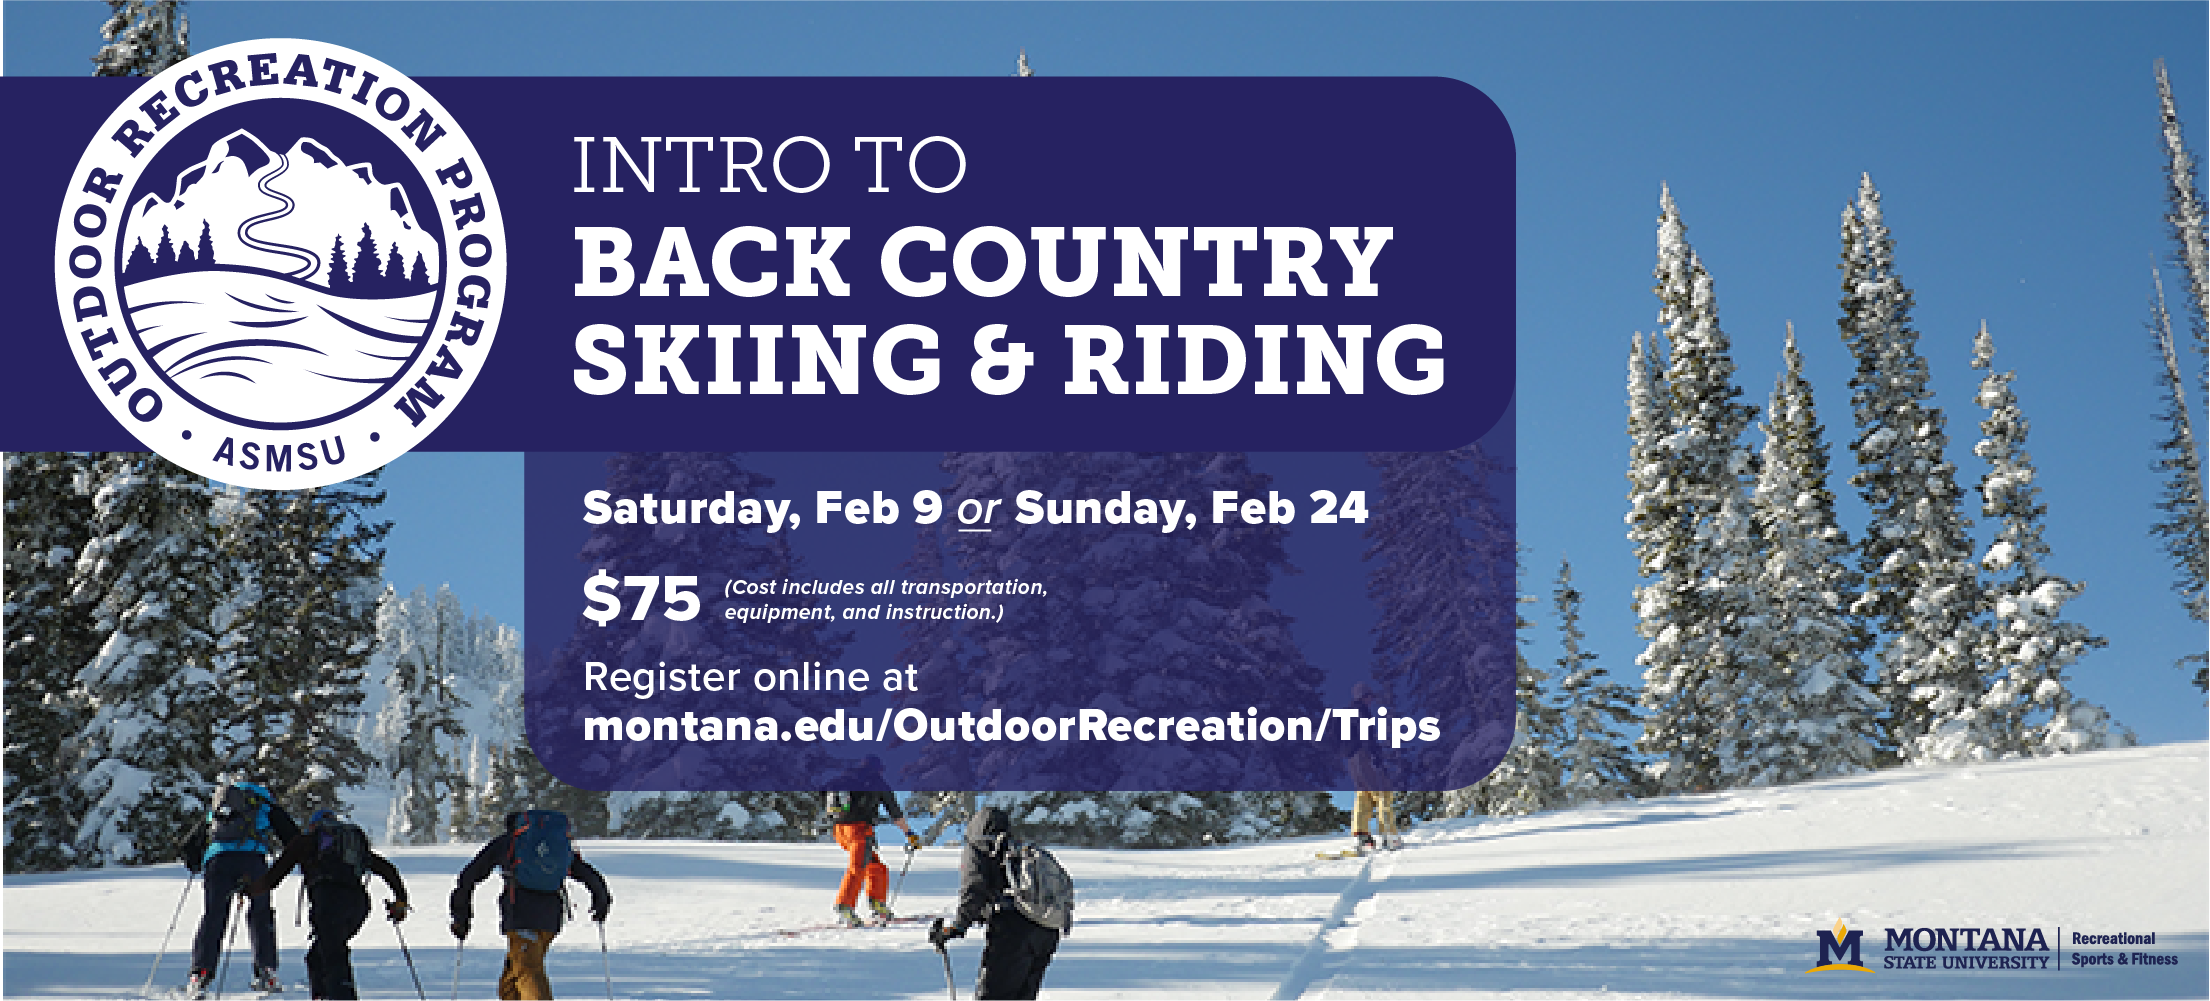 Saturday, Feb 9 or Sunday, Feb 24 join us for an intro into back country skiing or riding.  $75 cost includes all transportation, equipment, and instruction.  Must be comfortable skiing blue runs at ski resorts.